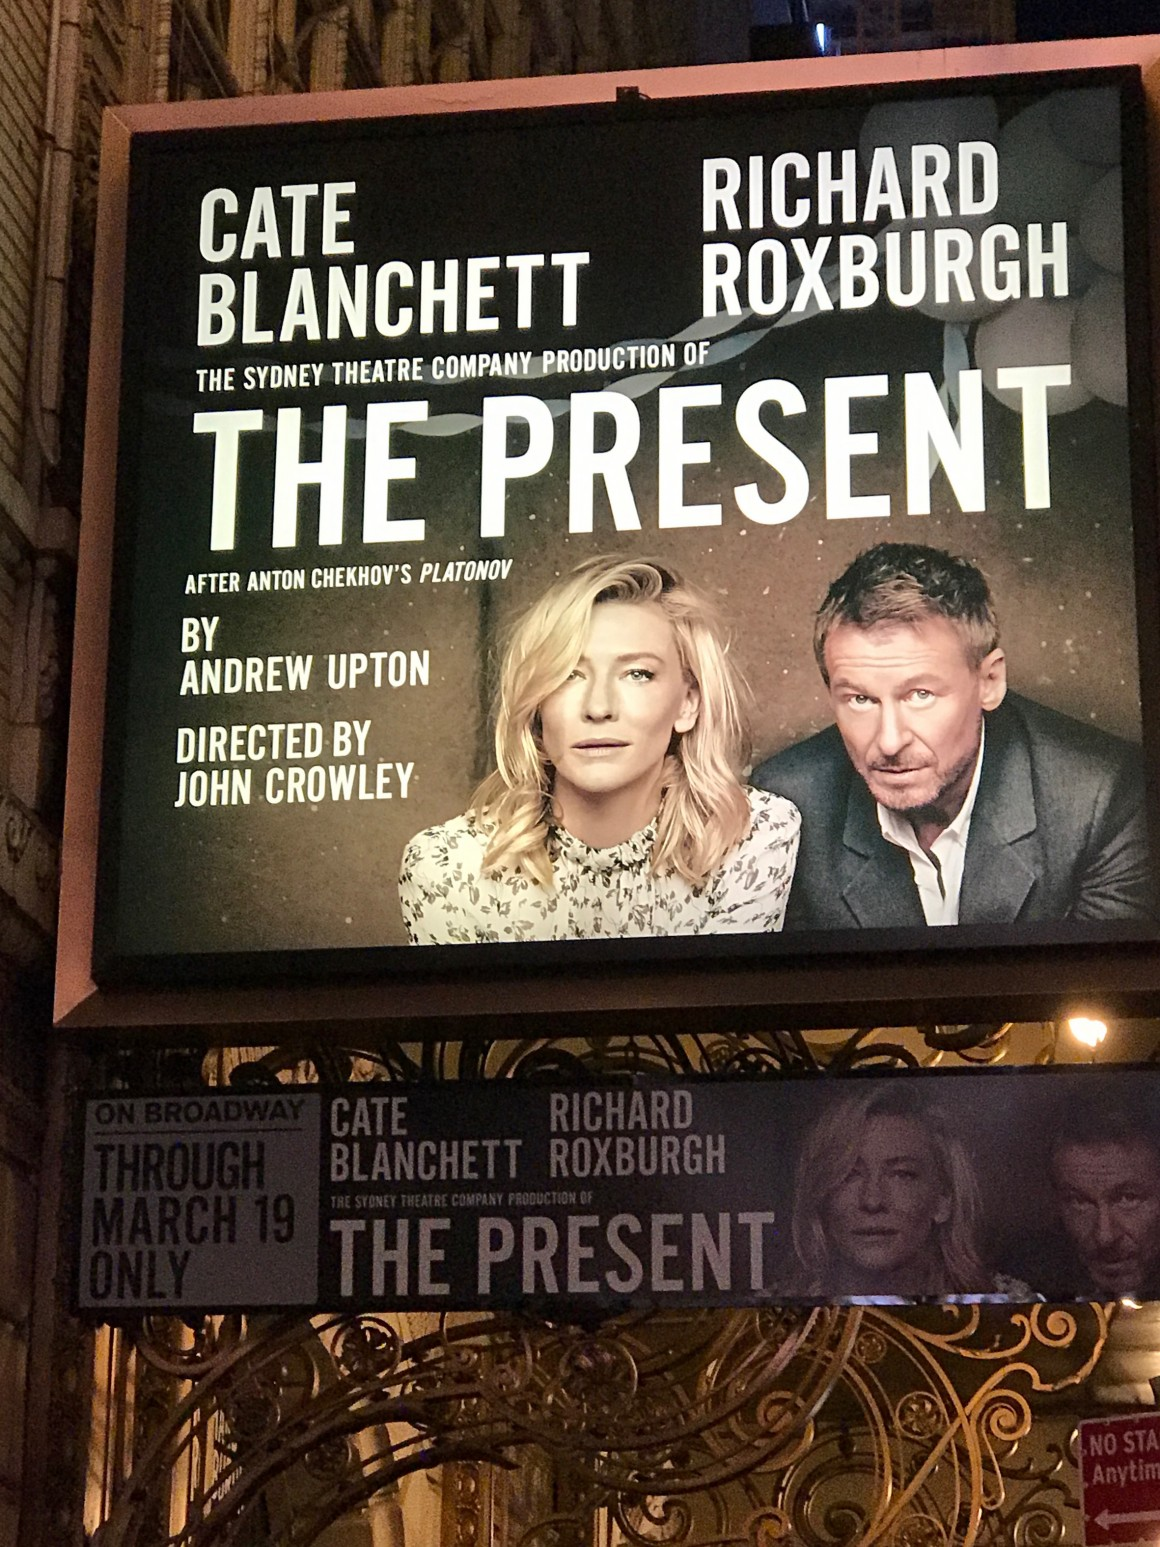 broadway the present cate blanchett sydney theatre company barrymore theatre